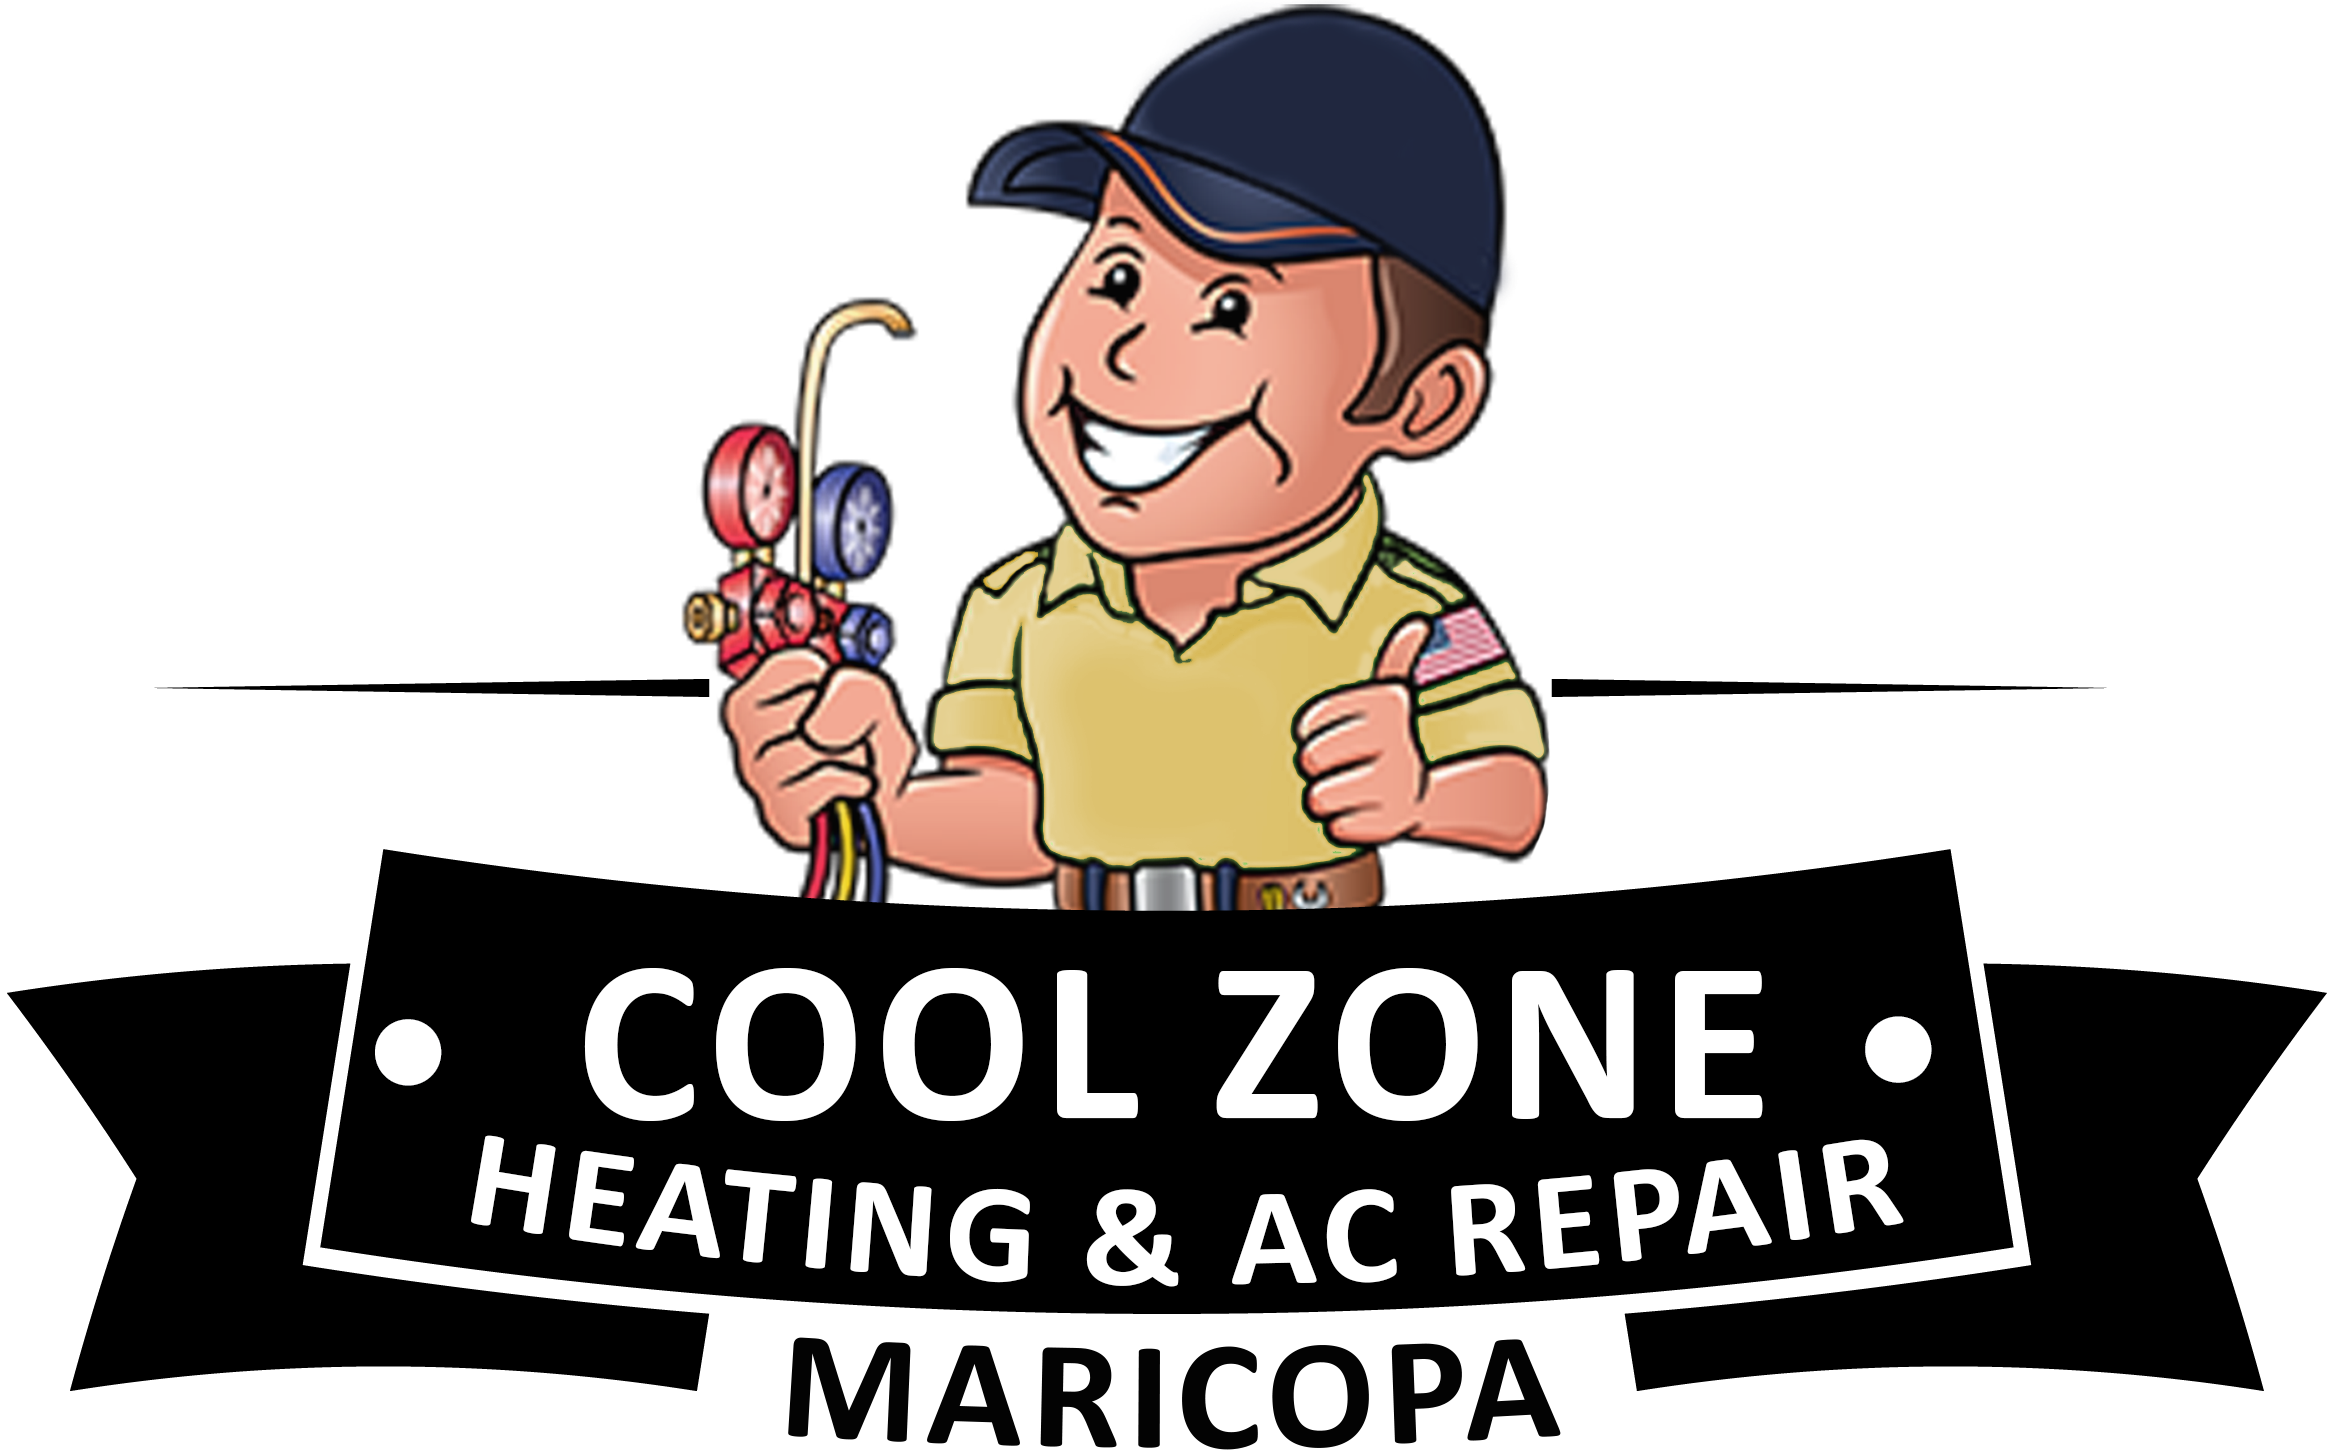 Cool Zone Heating And Ac Repair Maricopa Has Been Providing